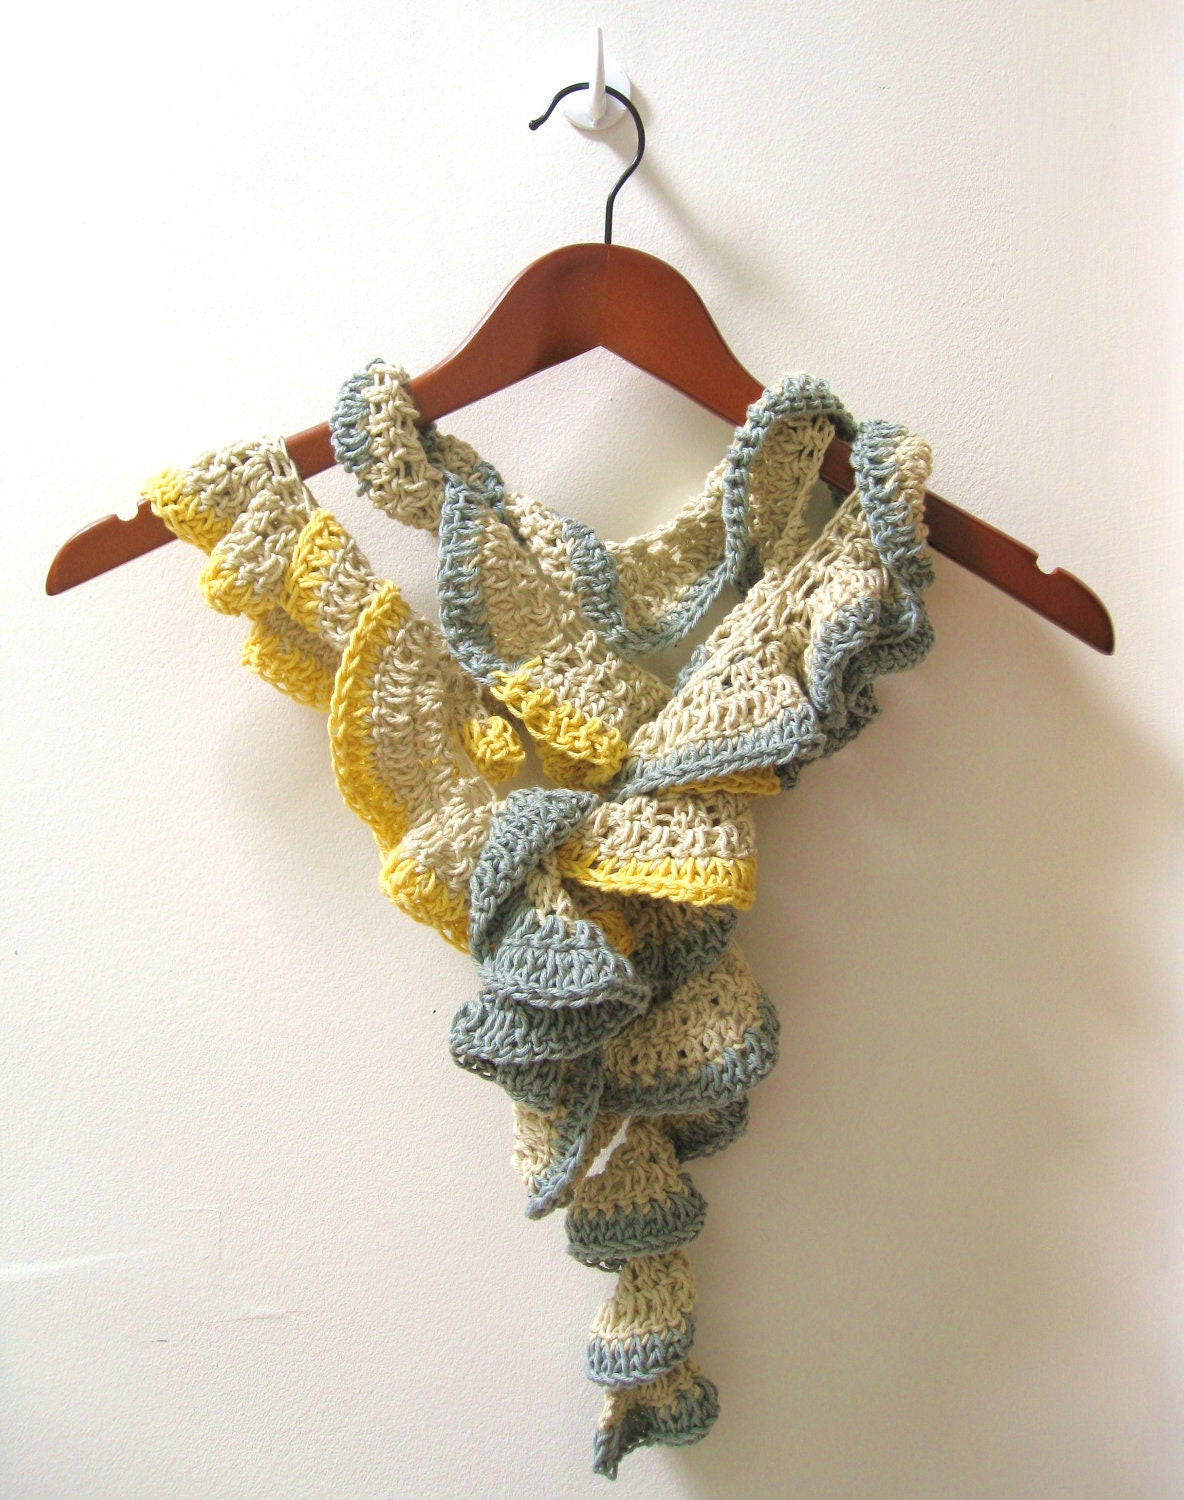 Ruffle Scarf - Crochet Scarf - The Ruffle Scarf - Cotton Merino - Neutral Colorblock - One of a Kind - meganEsass